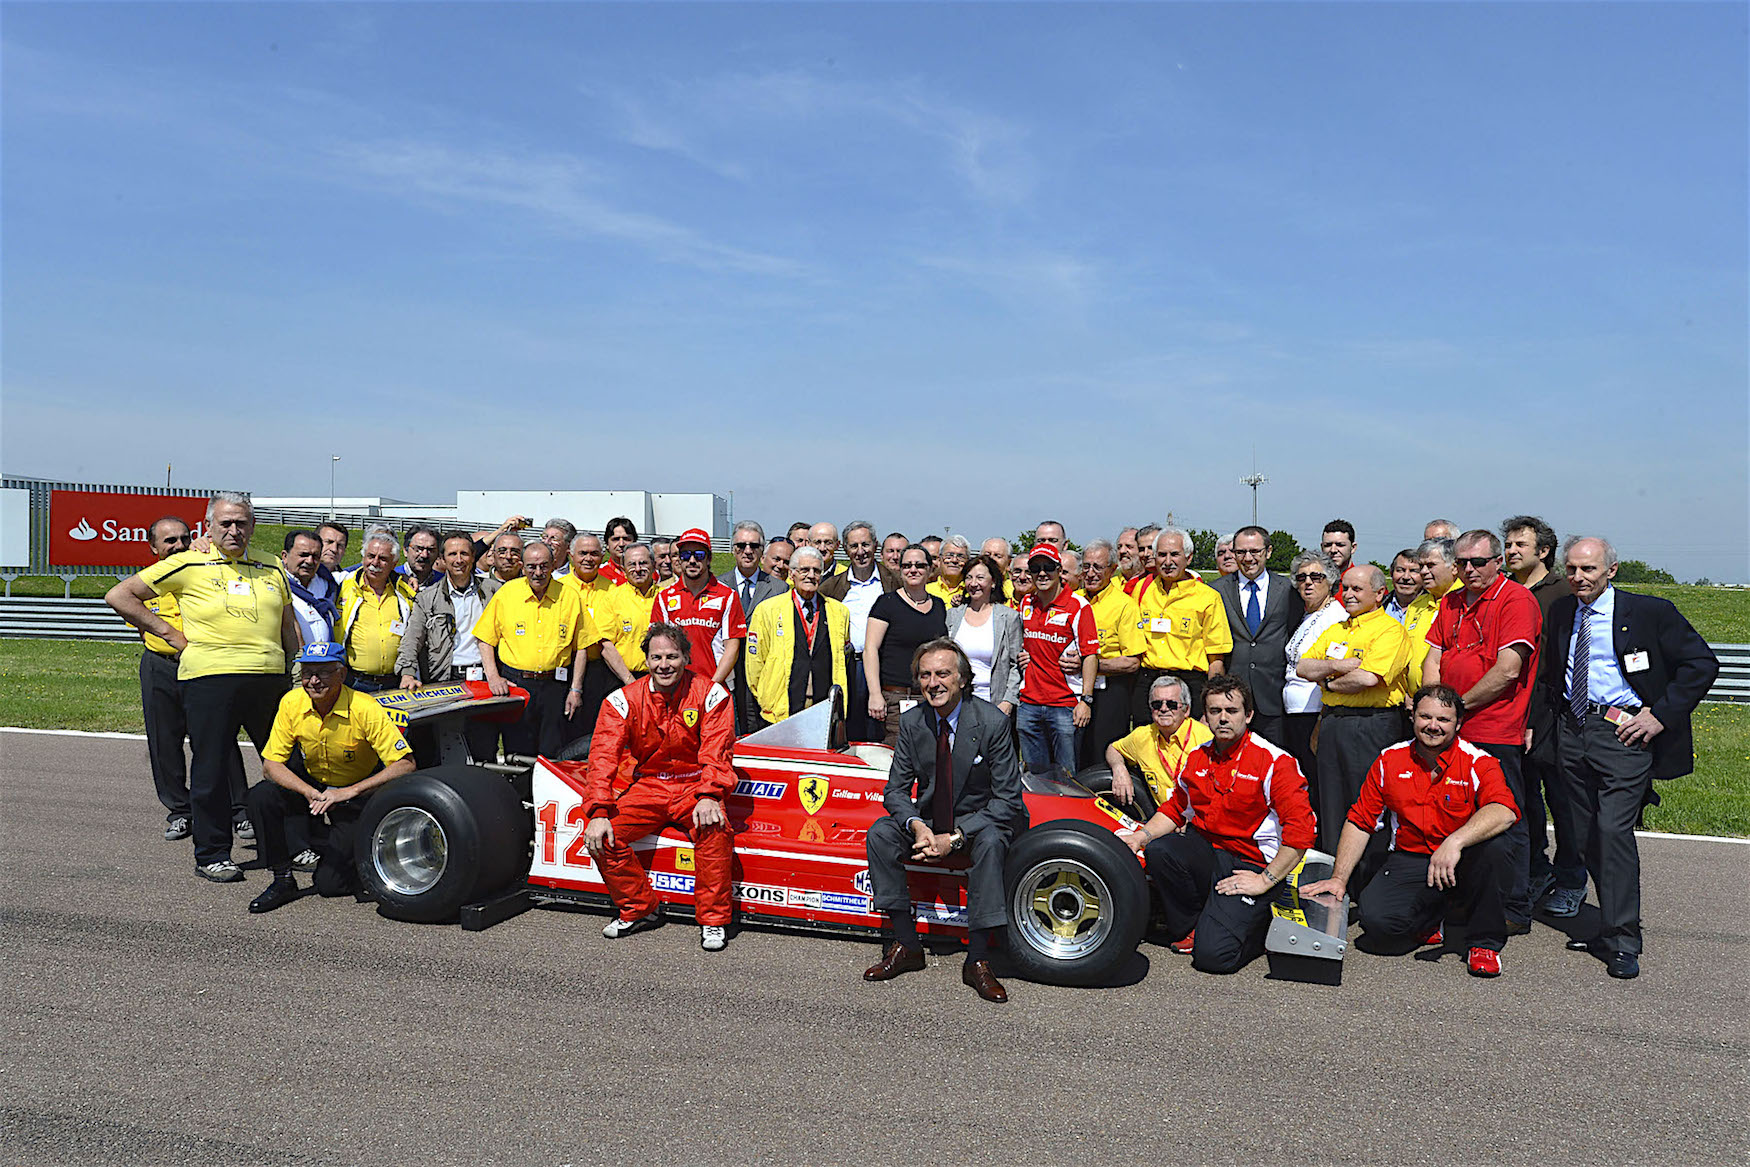 Ferrari crew at Fiorano 2012